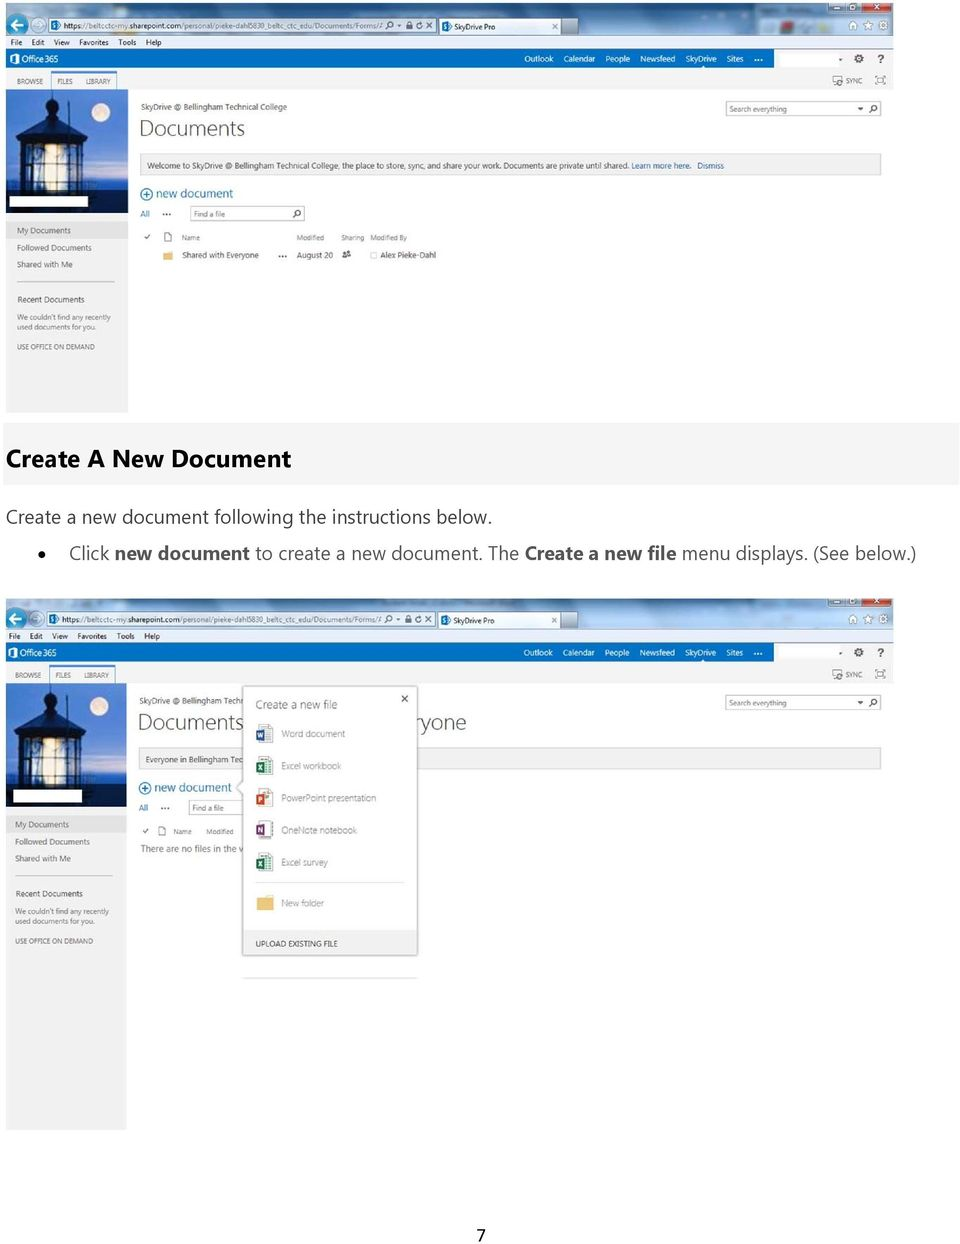 Click new document to create a new document.